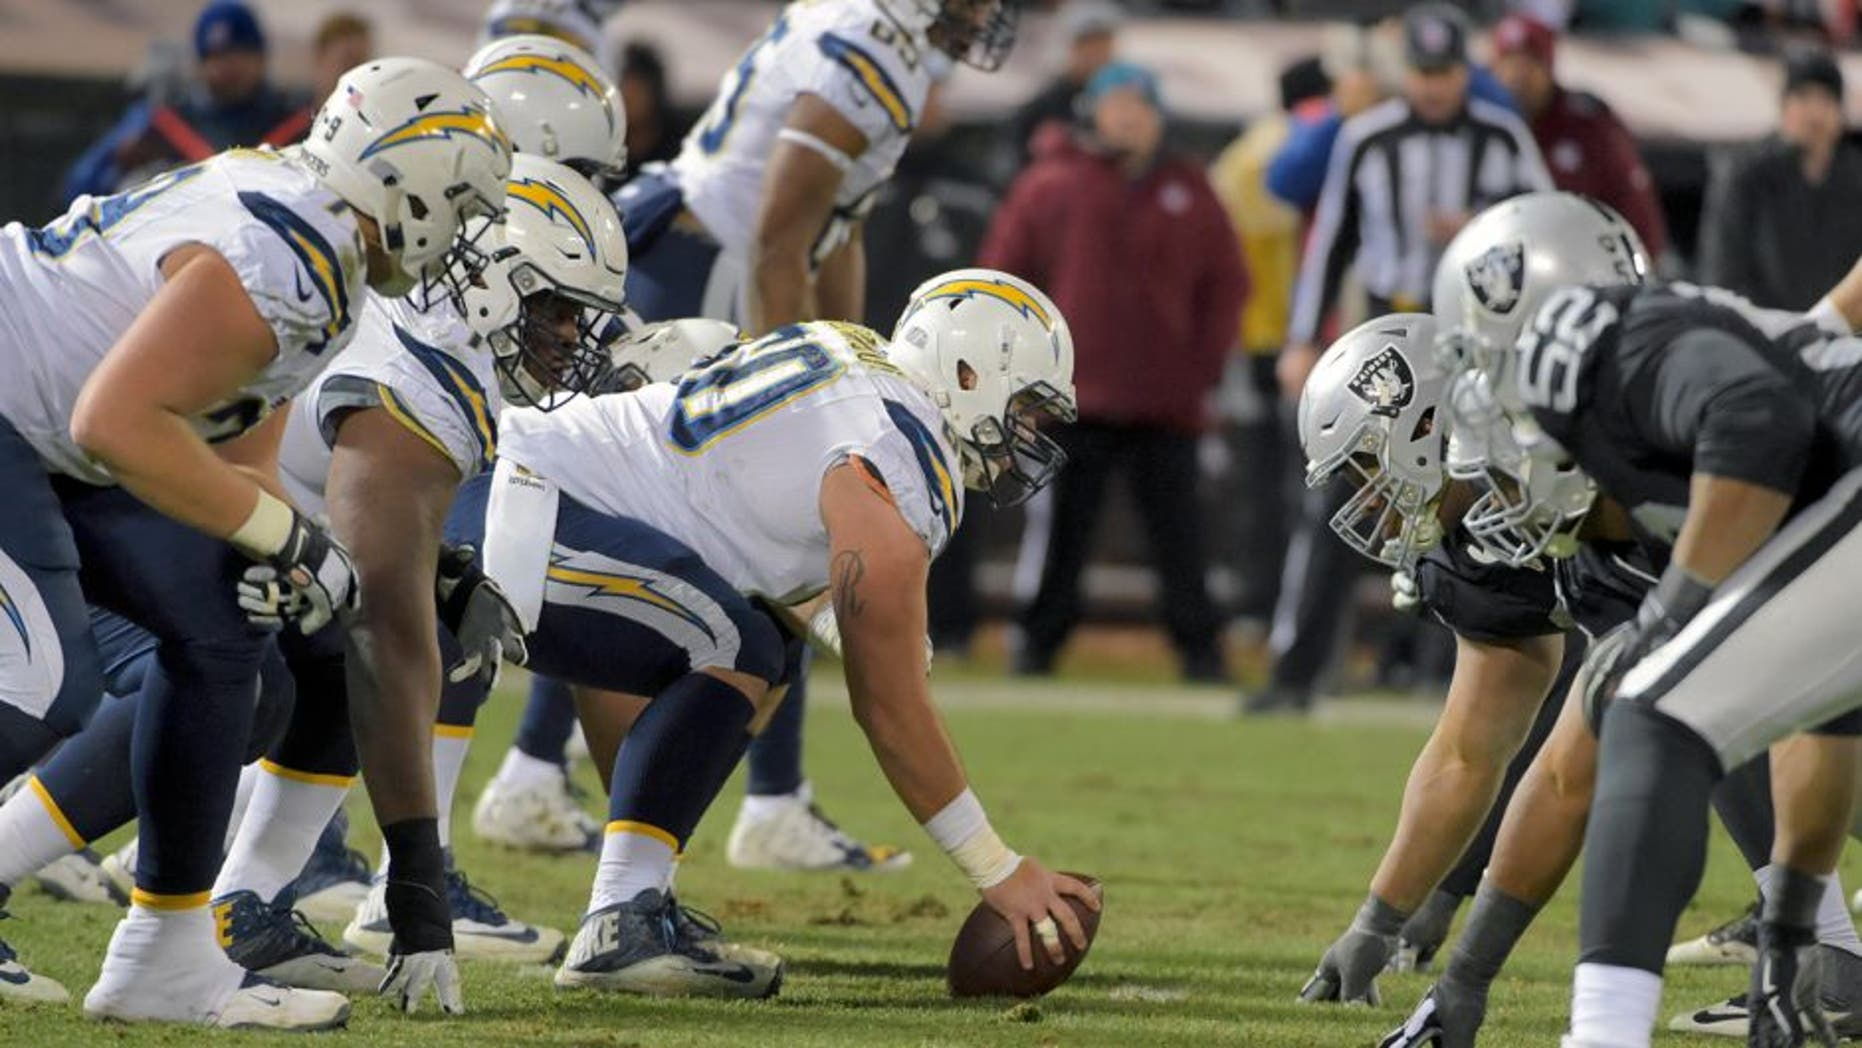 Dec 24, 2015; Oakland, CA, USA; General view of the line of scrimmage as San Diego Chargers center Trevor Robinson (60) prepares to snap the ball against the Oakland Raiders during an NFL football game at O.co Coliseum. The Raiders defeated the Chargers 23-20 in overtime. Mandatory Credit: Kirby Lee-USA TODAY Sports